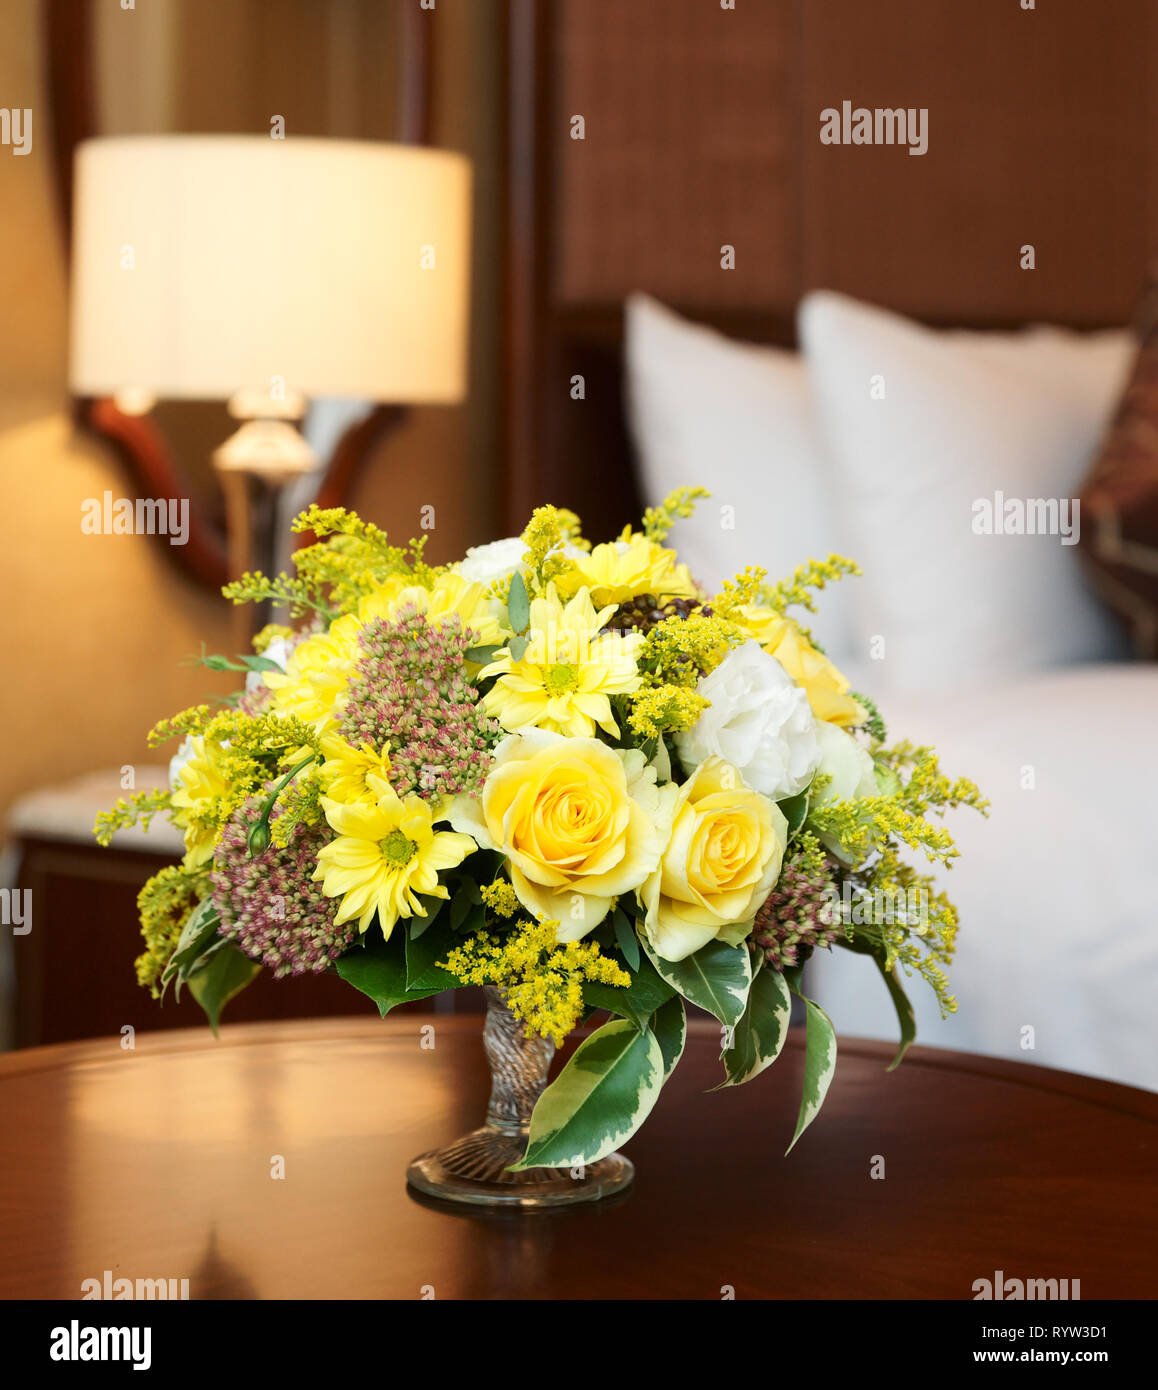 Hotel Flower Arrangement High Resolution Stock Photography And Images Alamy